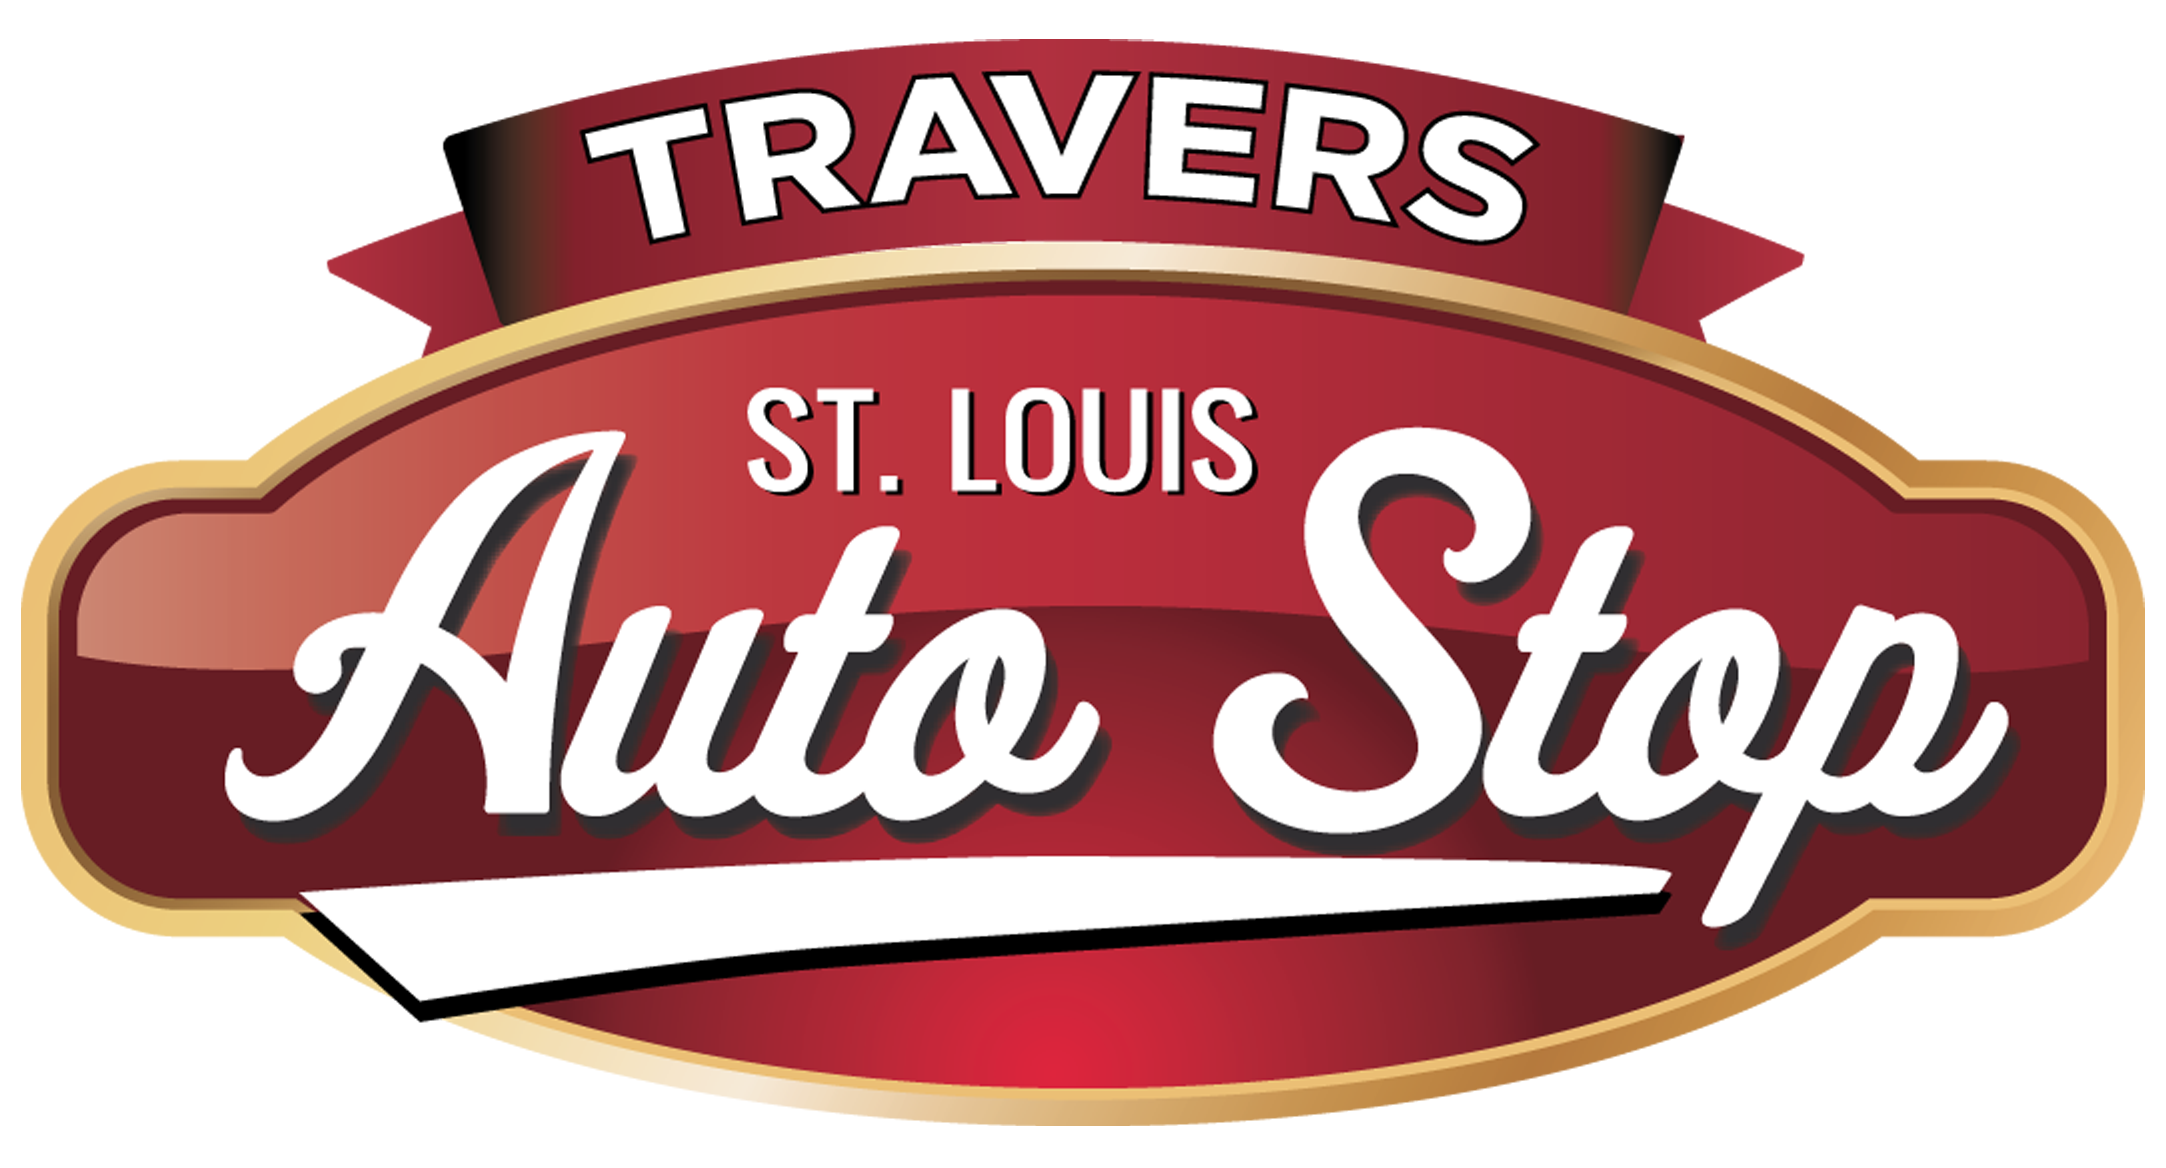 Gmt Auto Sales Ofallon Mo >> Travers Automotive Group   Pre-owned, Chevrolet, Ford, GMC, Dodge, Buick, Chevrolet, Ford, Honda ...